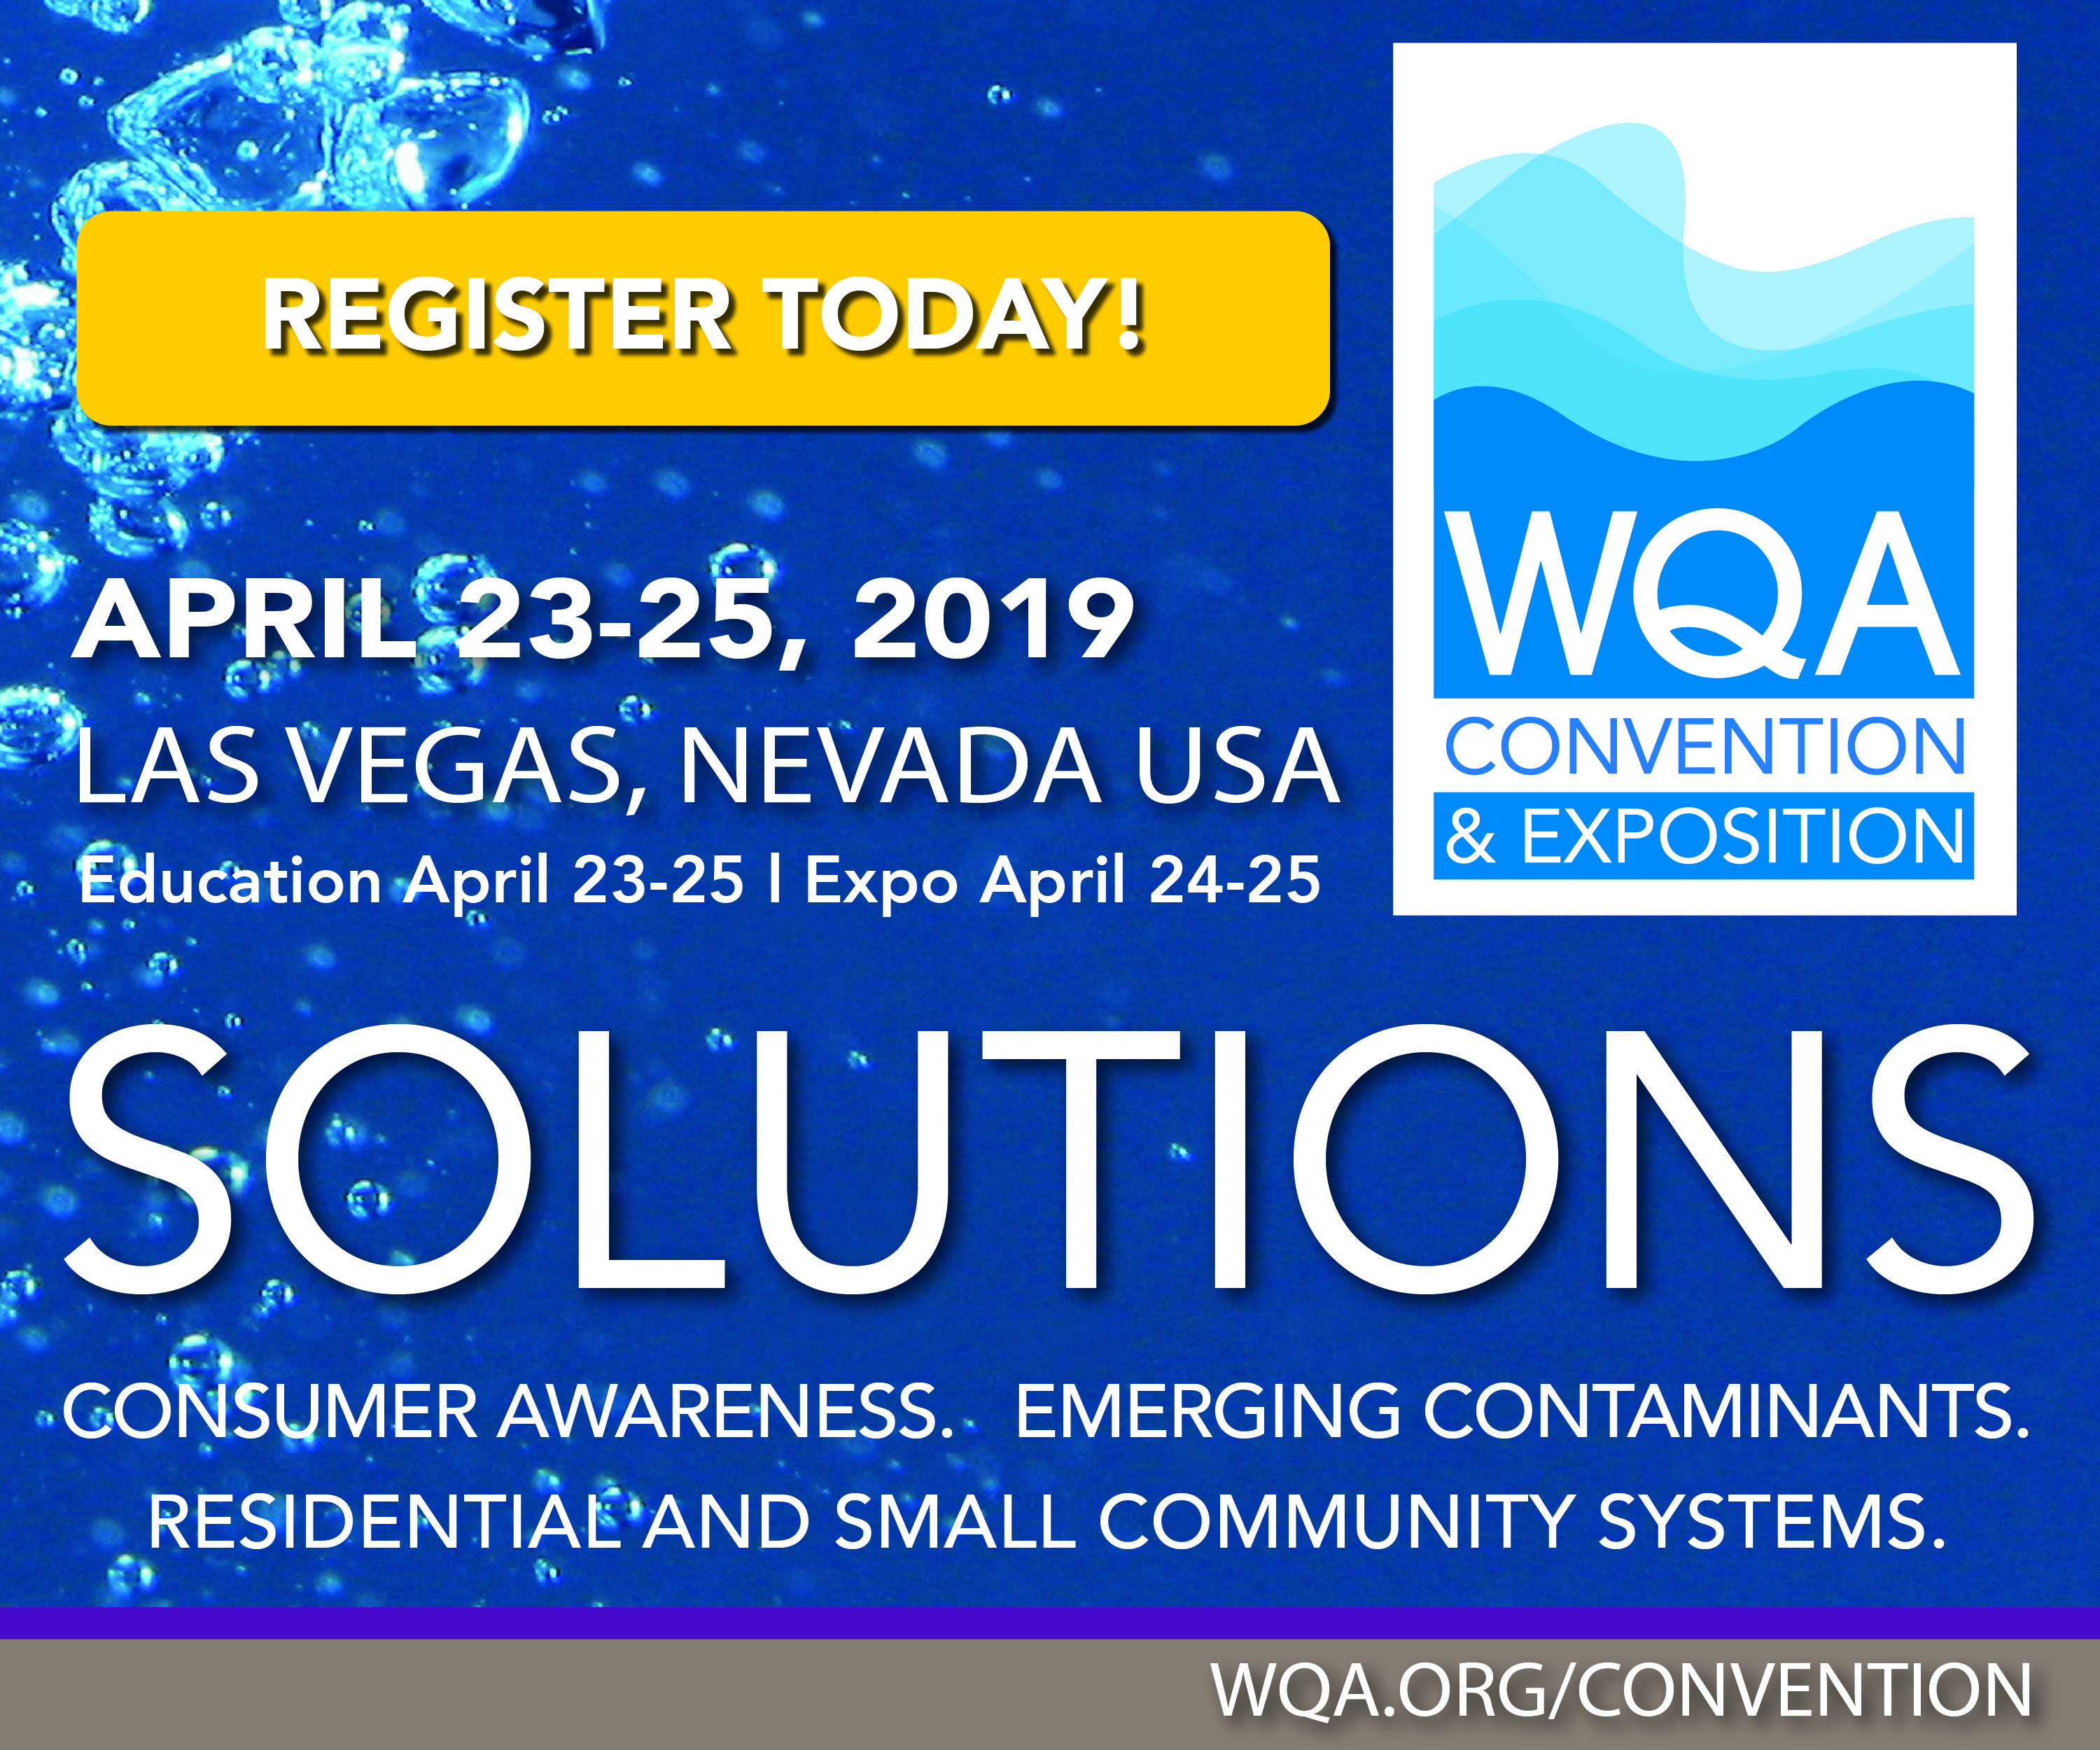 WQA Convention & Exposition - Food and Beverage Industry Events